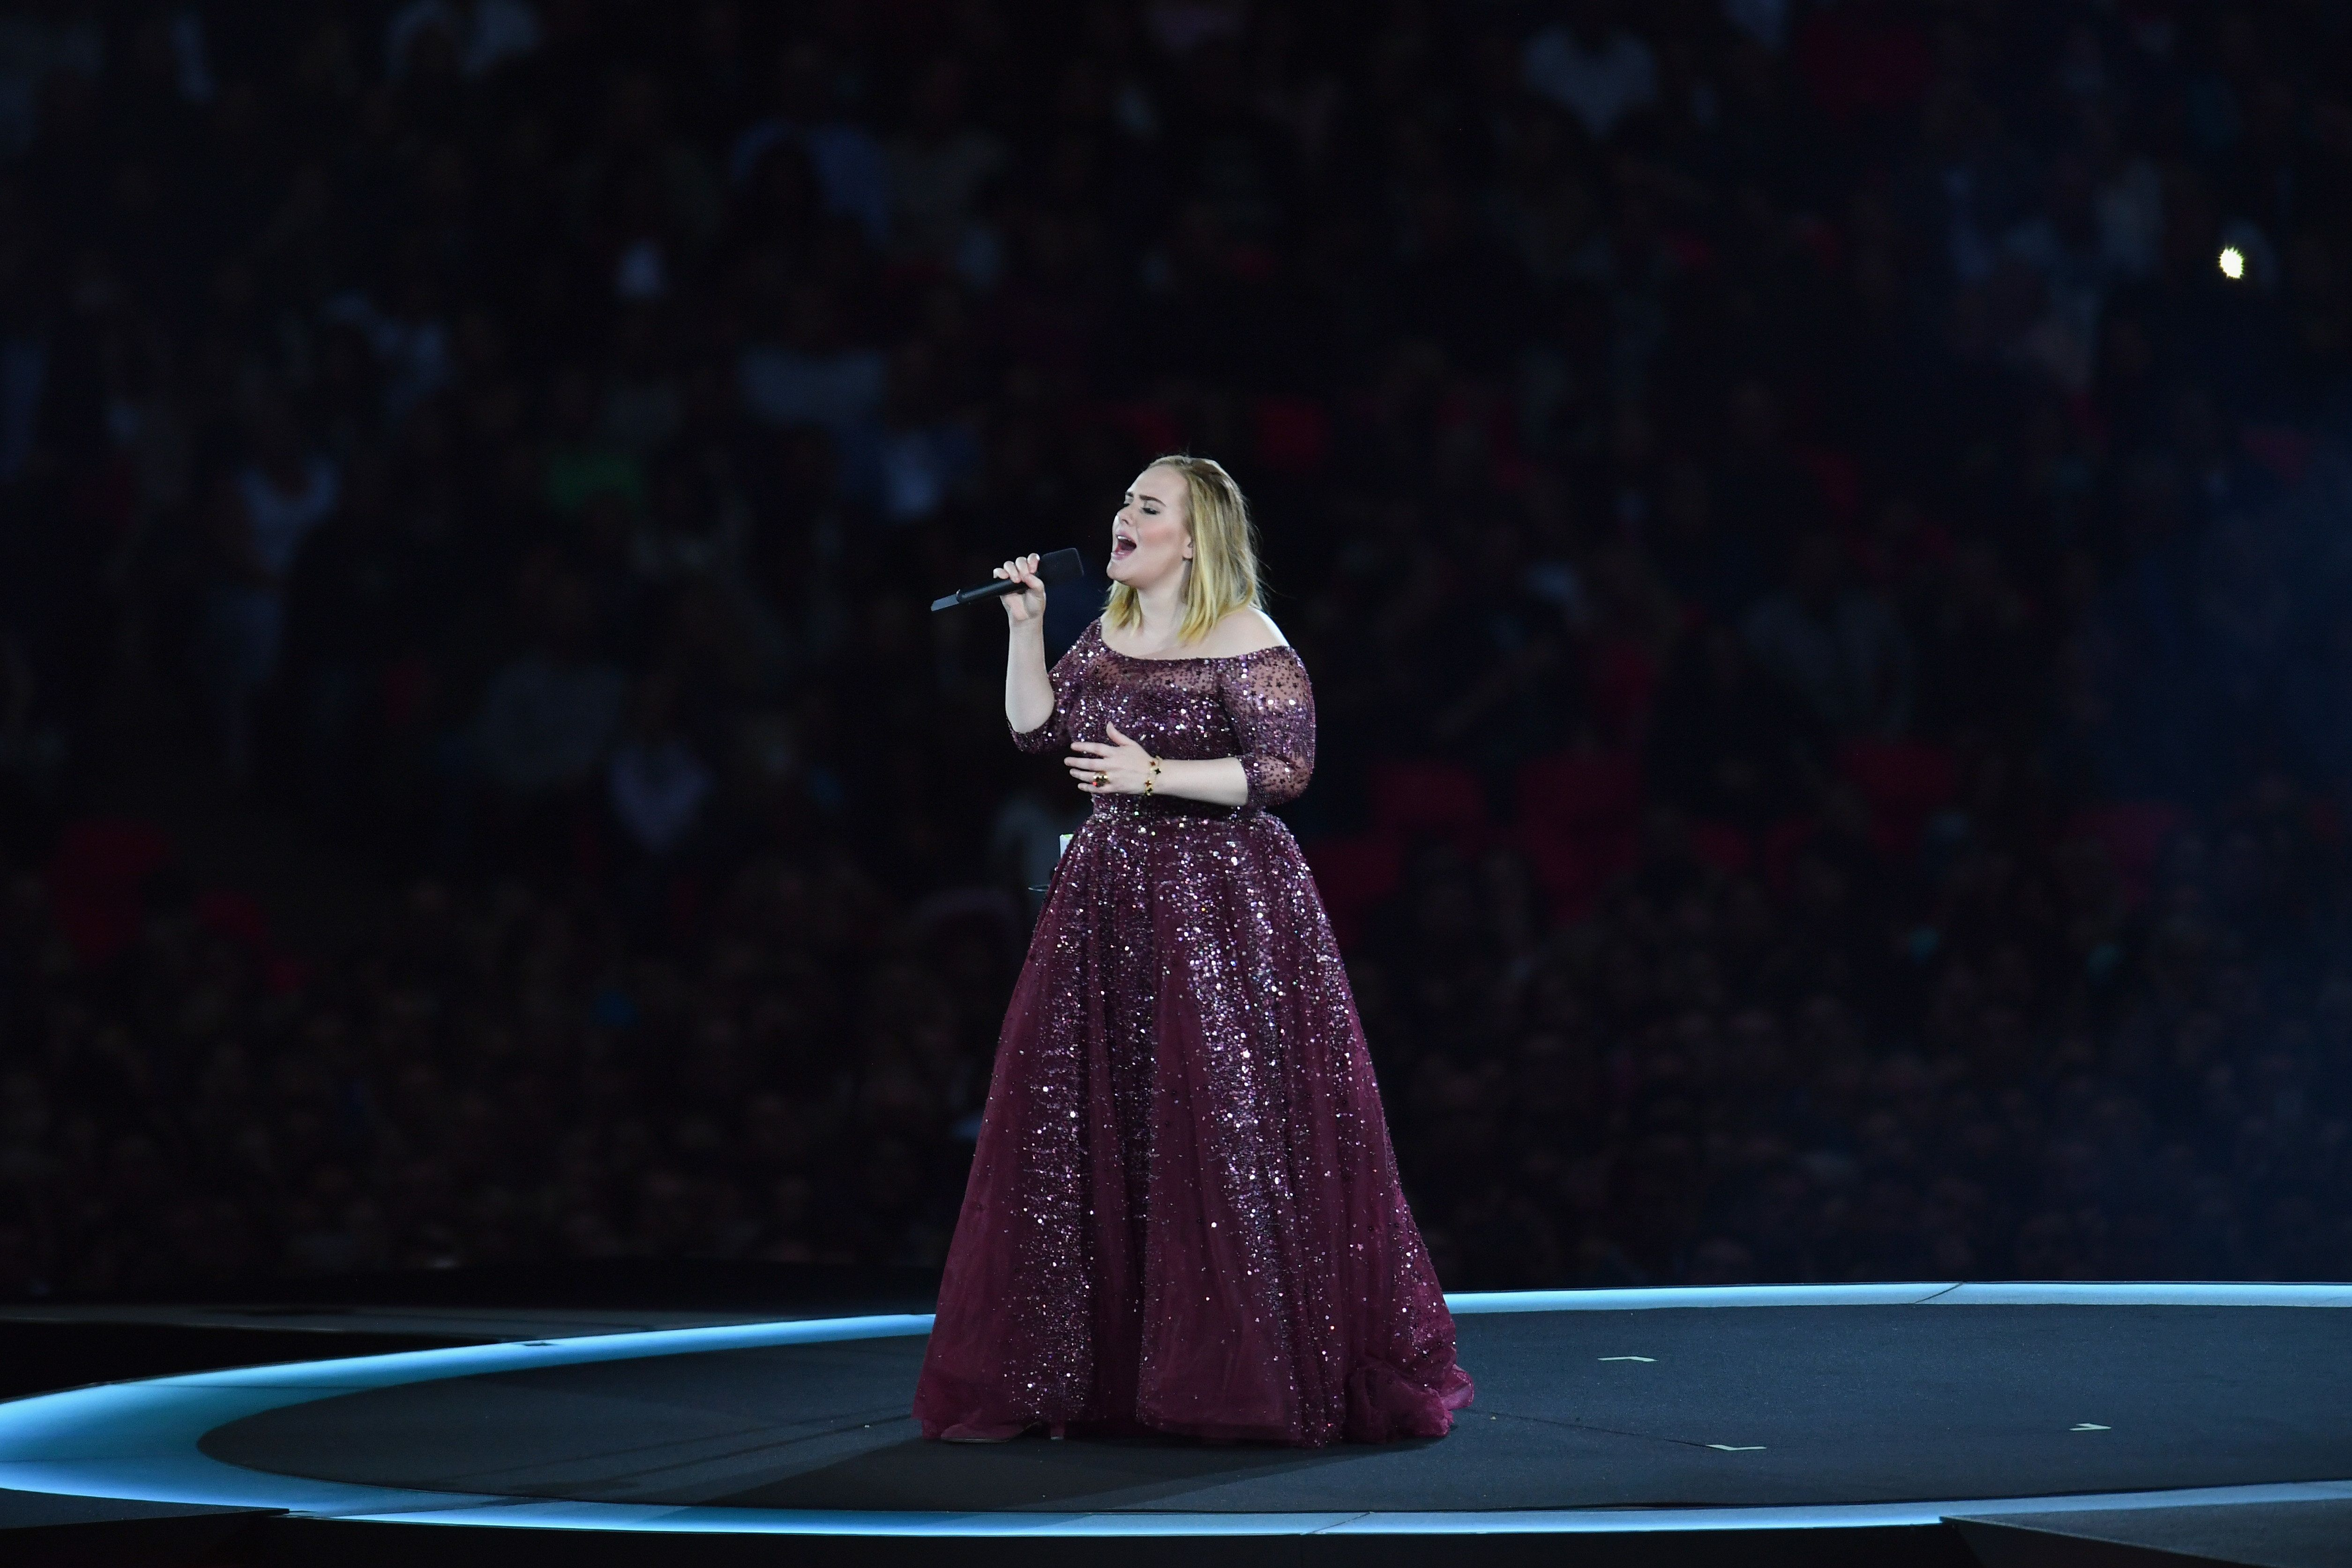 LONDON, ENGLAND - JUNE 28:  Adele performs at Wembley Stadium on June 28, 2017 in London, England.  (Photo by Gareth Cattermole/Getty Images for September Management)